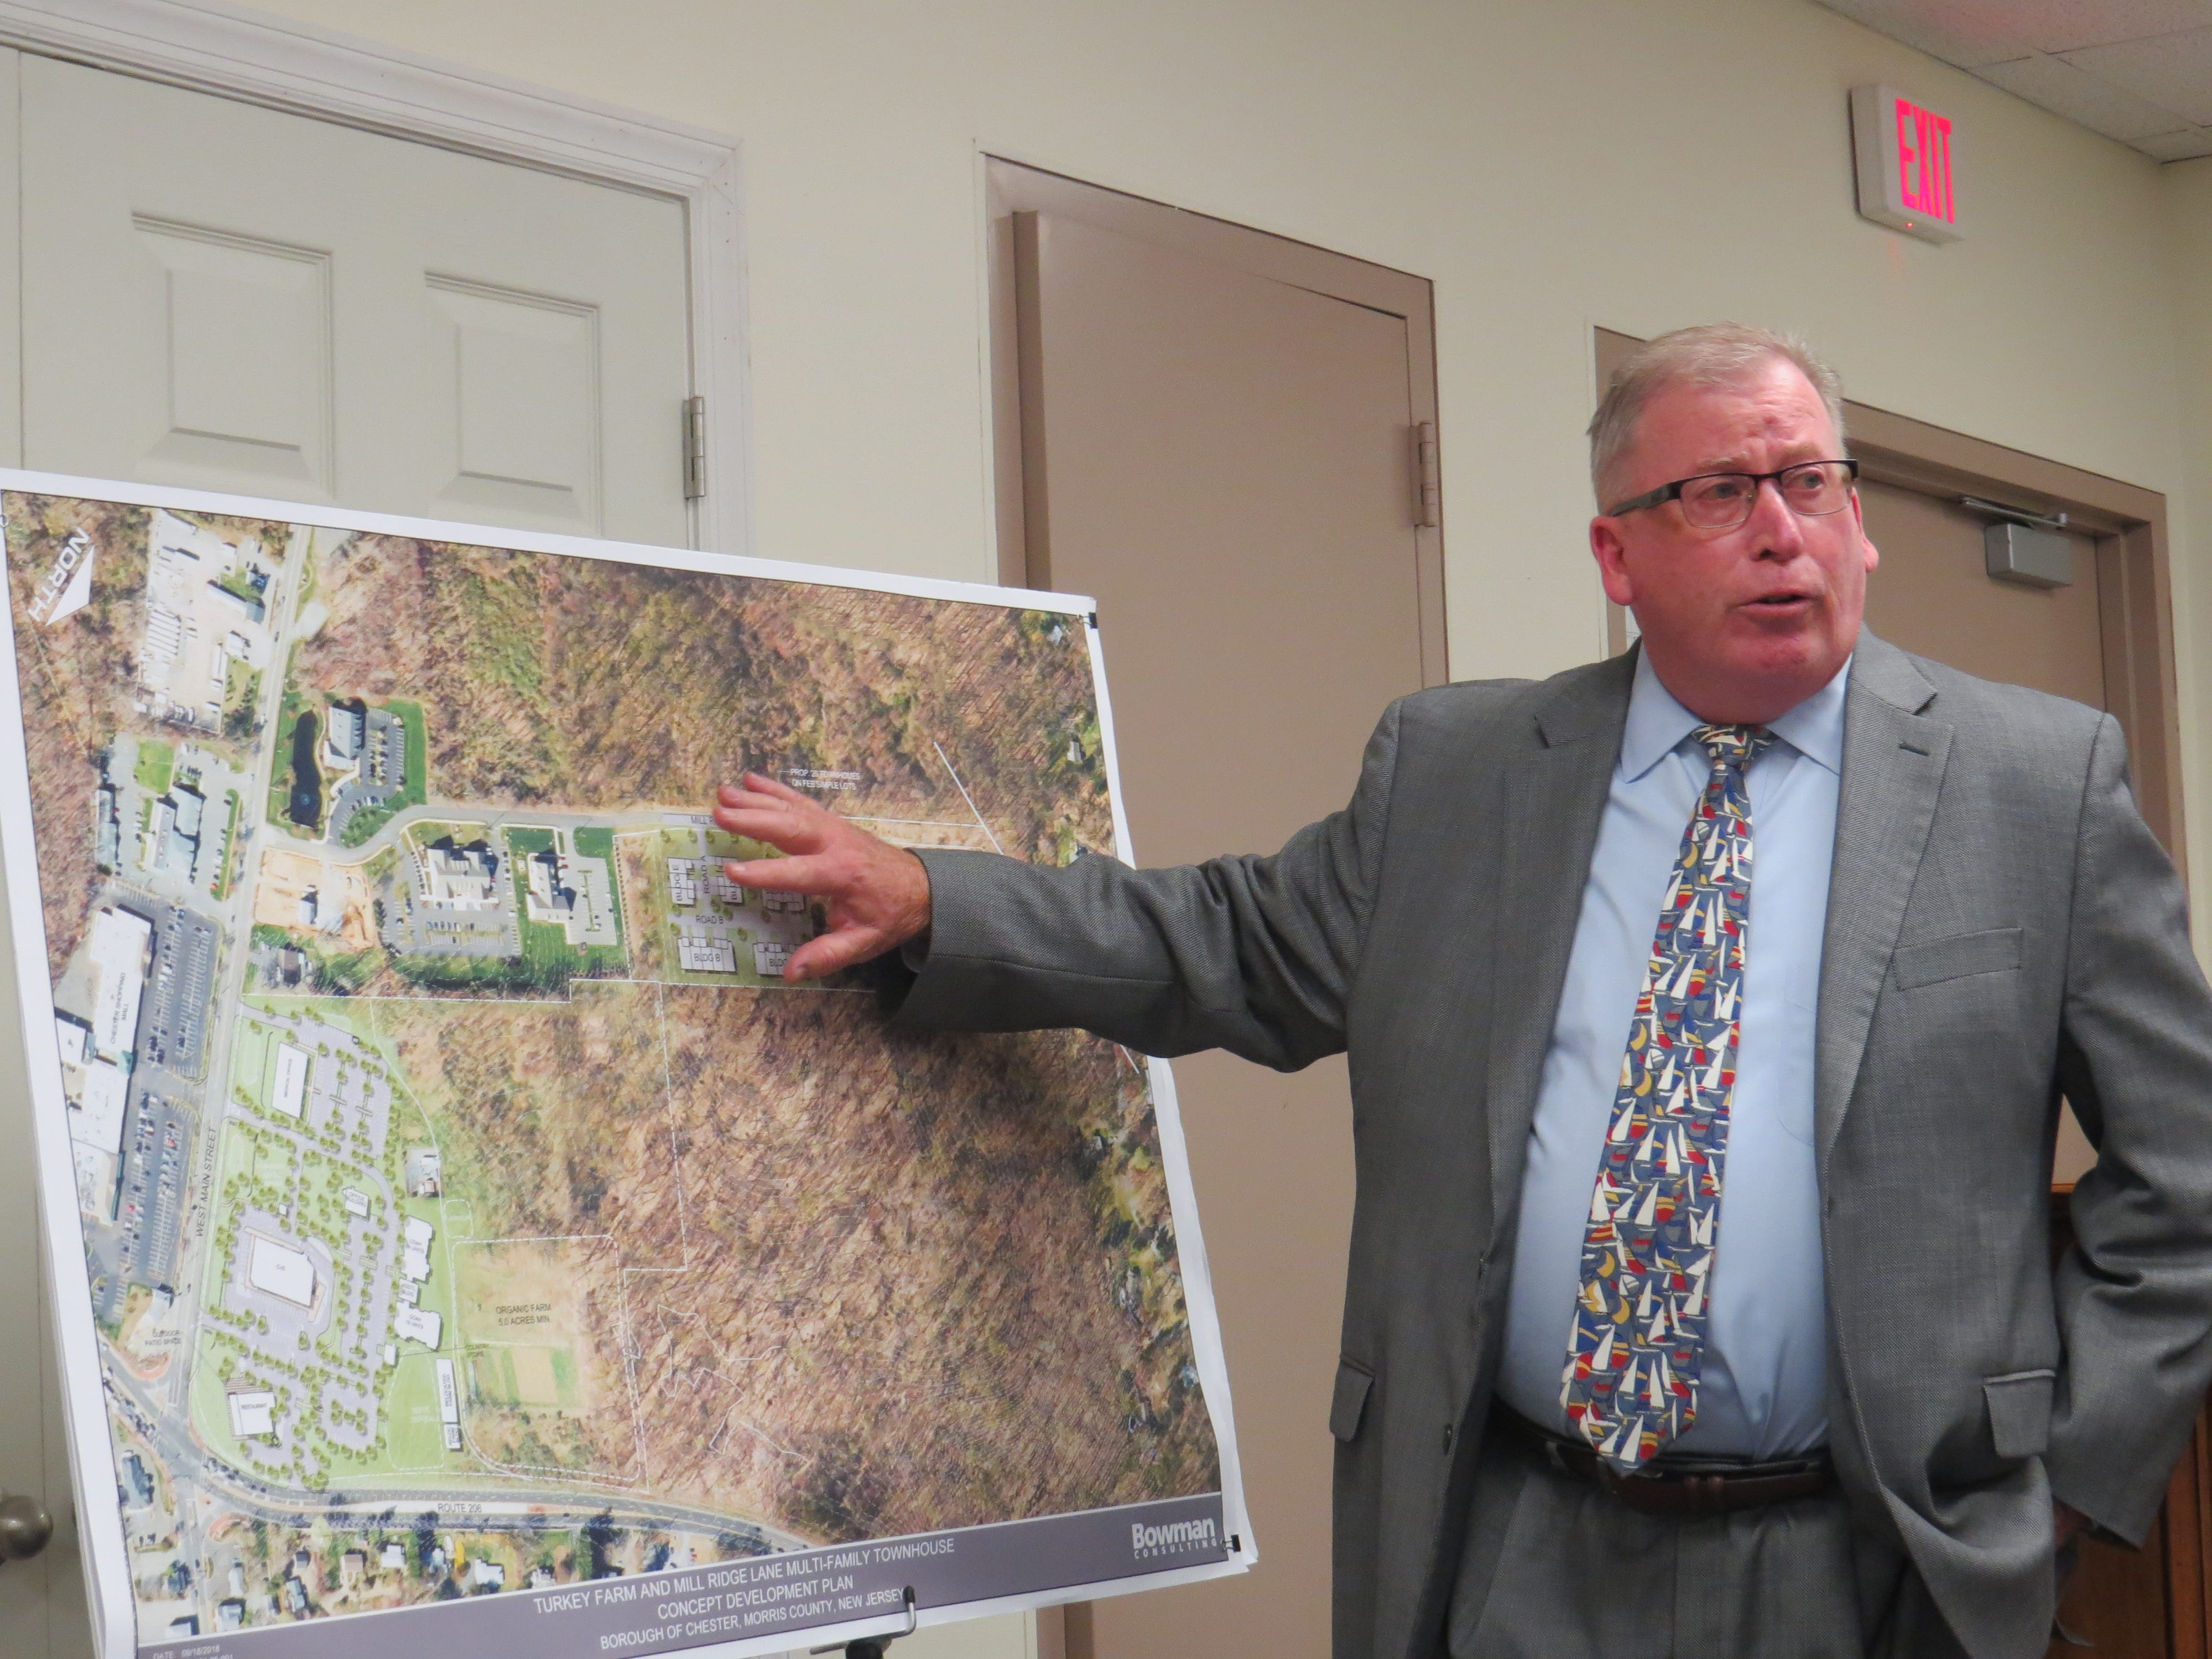 Engineer Bill Hamilton provides an overview of a redevelopment proposal for Larison's Turkey Farm property at the Chester Council meeting on Sept. 18, 2018.